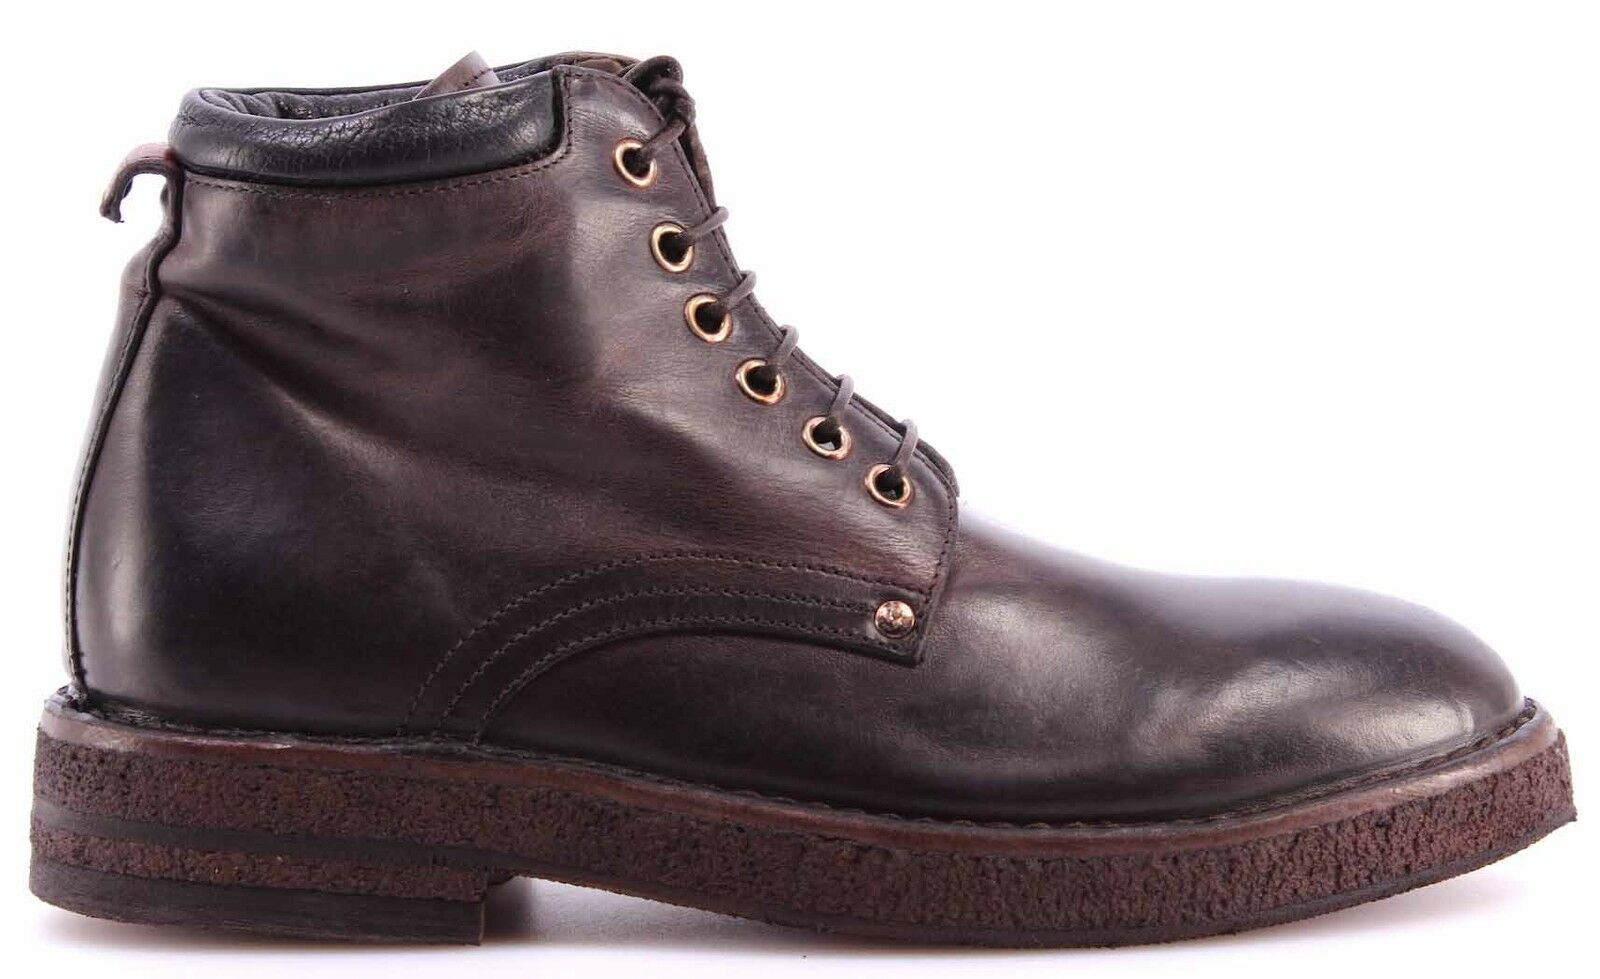 MOMA Scarpe Stivaletto Donna Ankle Boot 72503-TB Hannover TMoro Pelle Vintage IT